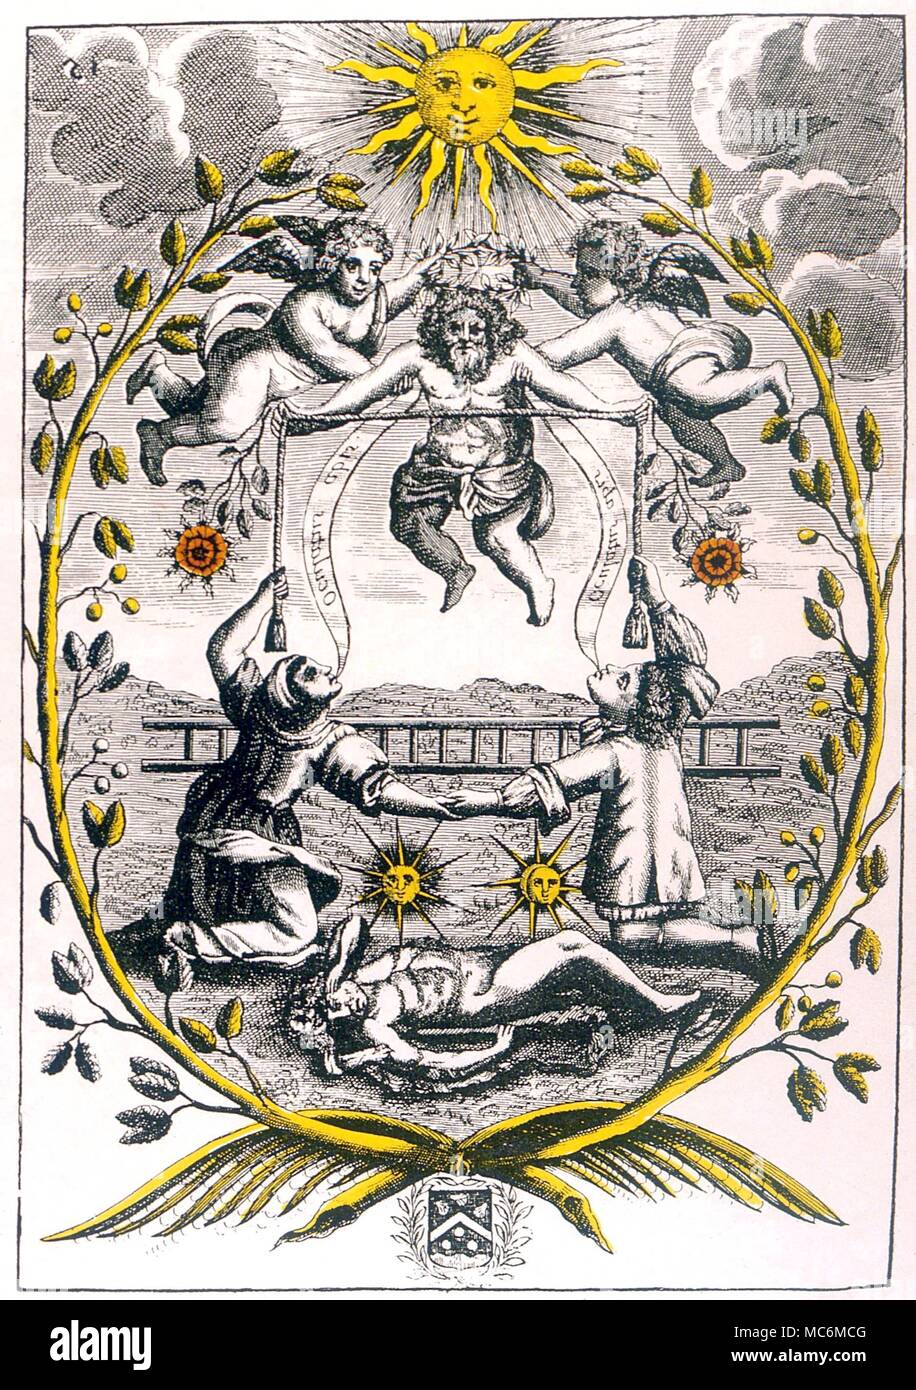 ALCHEMY - MUTUS LIBER.  Plate 15 from Mutus Liber, the Wordless Book, 1677 (La Rochelle), probably designed by Jacob Saulat.  Plate 15 - the transfiguration of the Quintessence (Hercules) - Stock Image